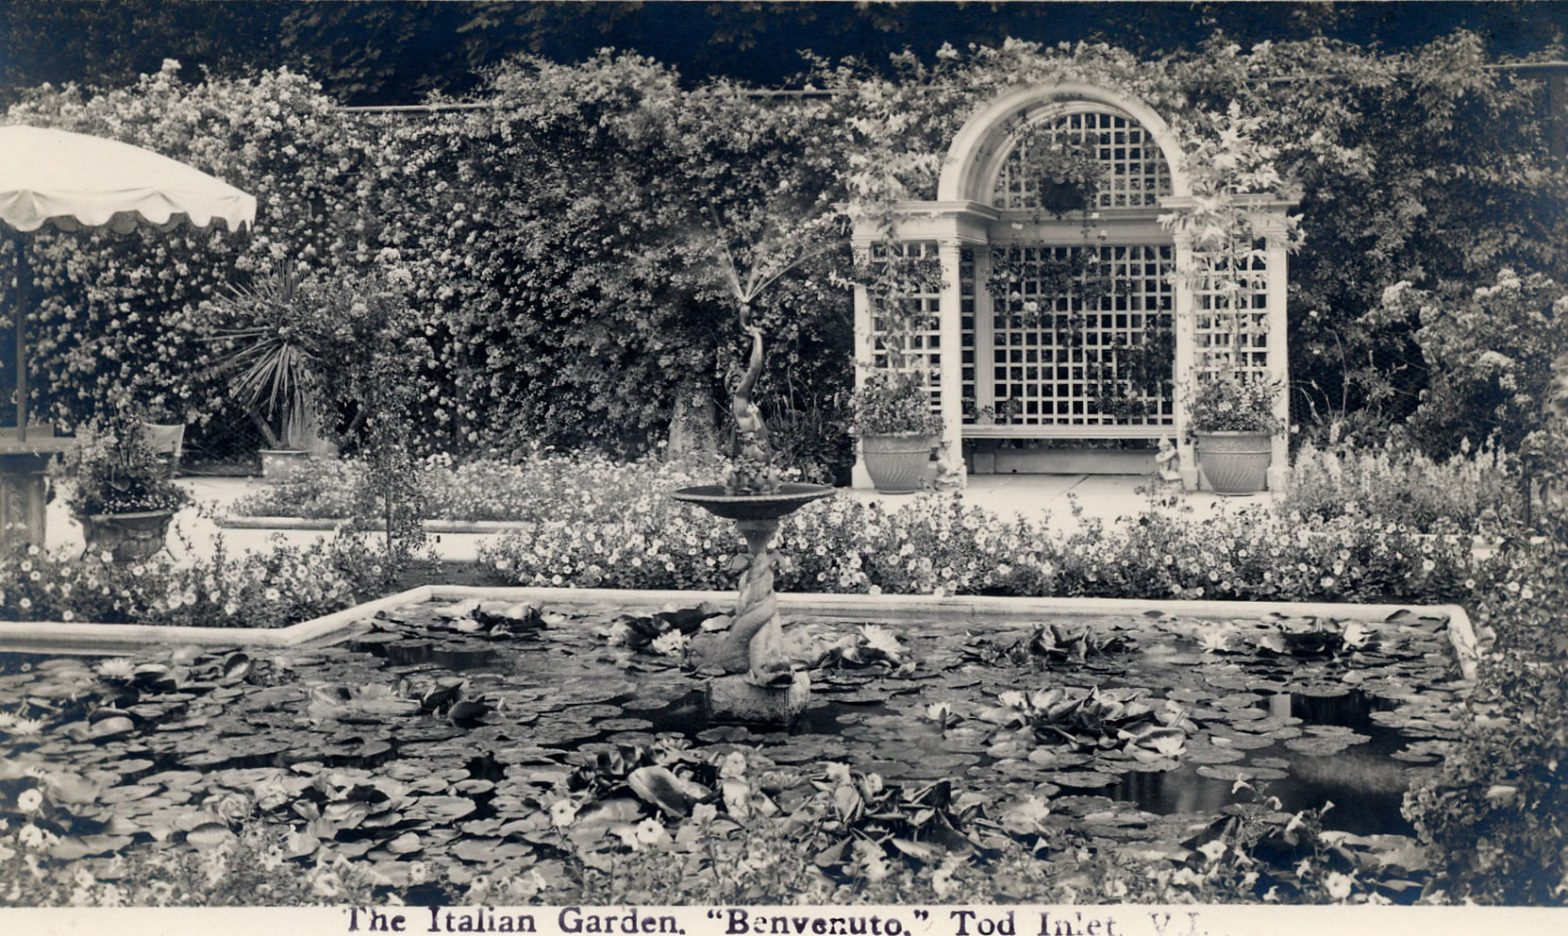 Postcard of the Italian Garden, looking east, circa 1926-1928, prior to the construction of the 1929 addition to Benvenuto on the east side of the Italian Garden. The arbour in the photo was designed by architect Samuel Maclure in 1925. (Author's collection)